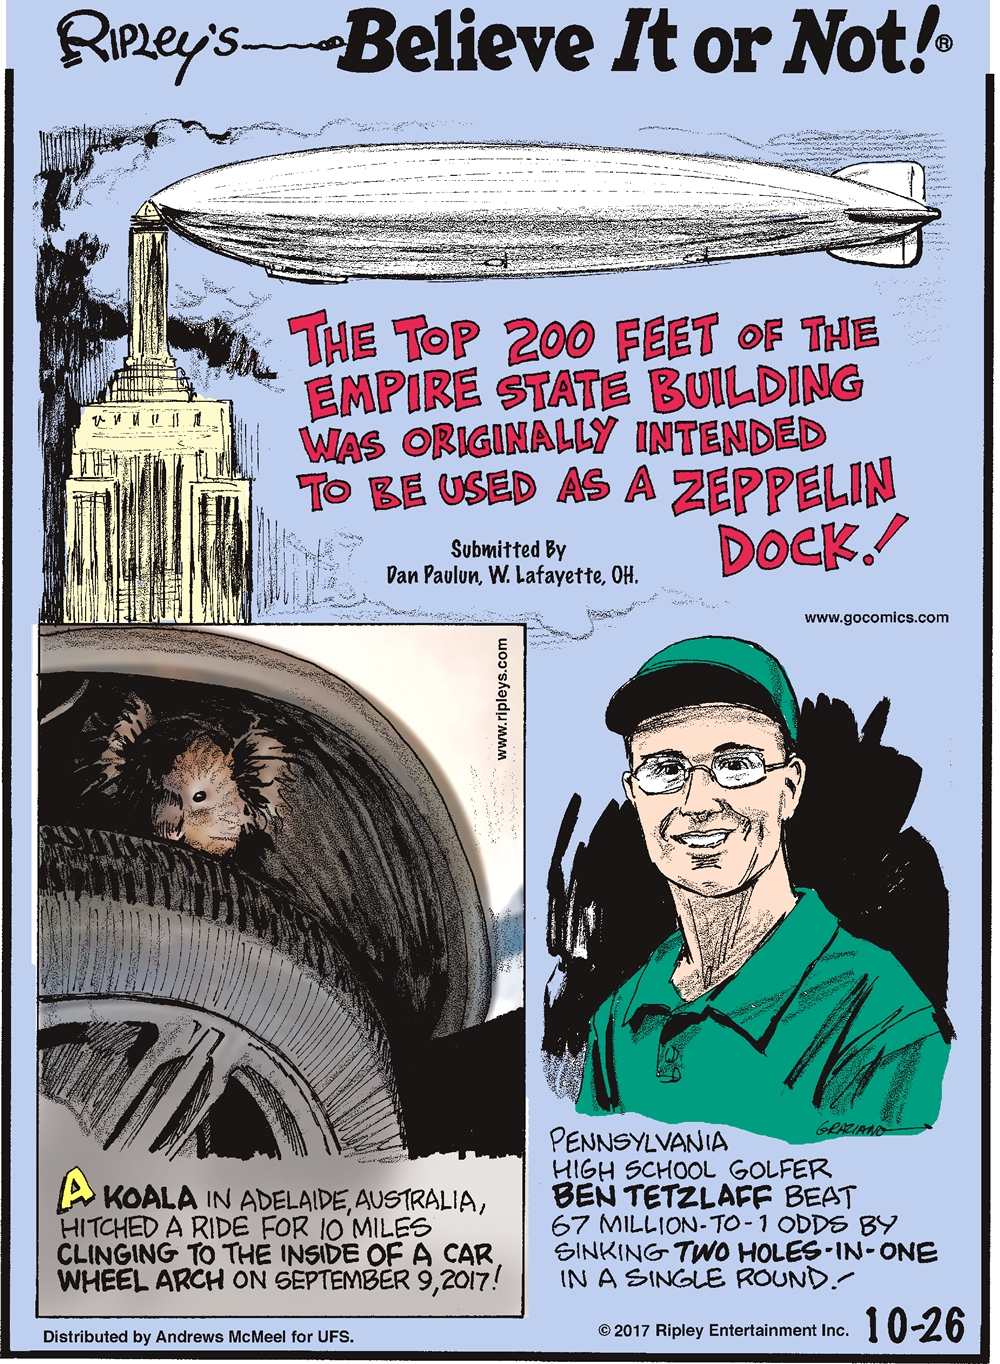 The top 200 feet of the Empire State Building was originally intended to be used as a zeppelin dock! Submitted by Dan Paulun, W. Lafayette, OH.-------------------- A koala in Adelaide, Australia, hitched a ride for 10 miles clinging to the inside of a car wheel arch on September 9, 2017!--------------------- Pennsylvania high school golfer Ben Tetzlaff beat 67 million-to-1 odds by sinking two holes-in-one in a single round!